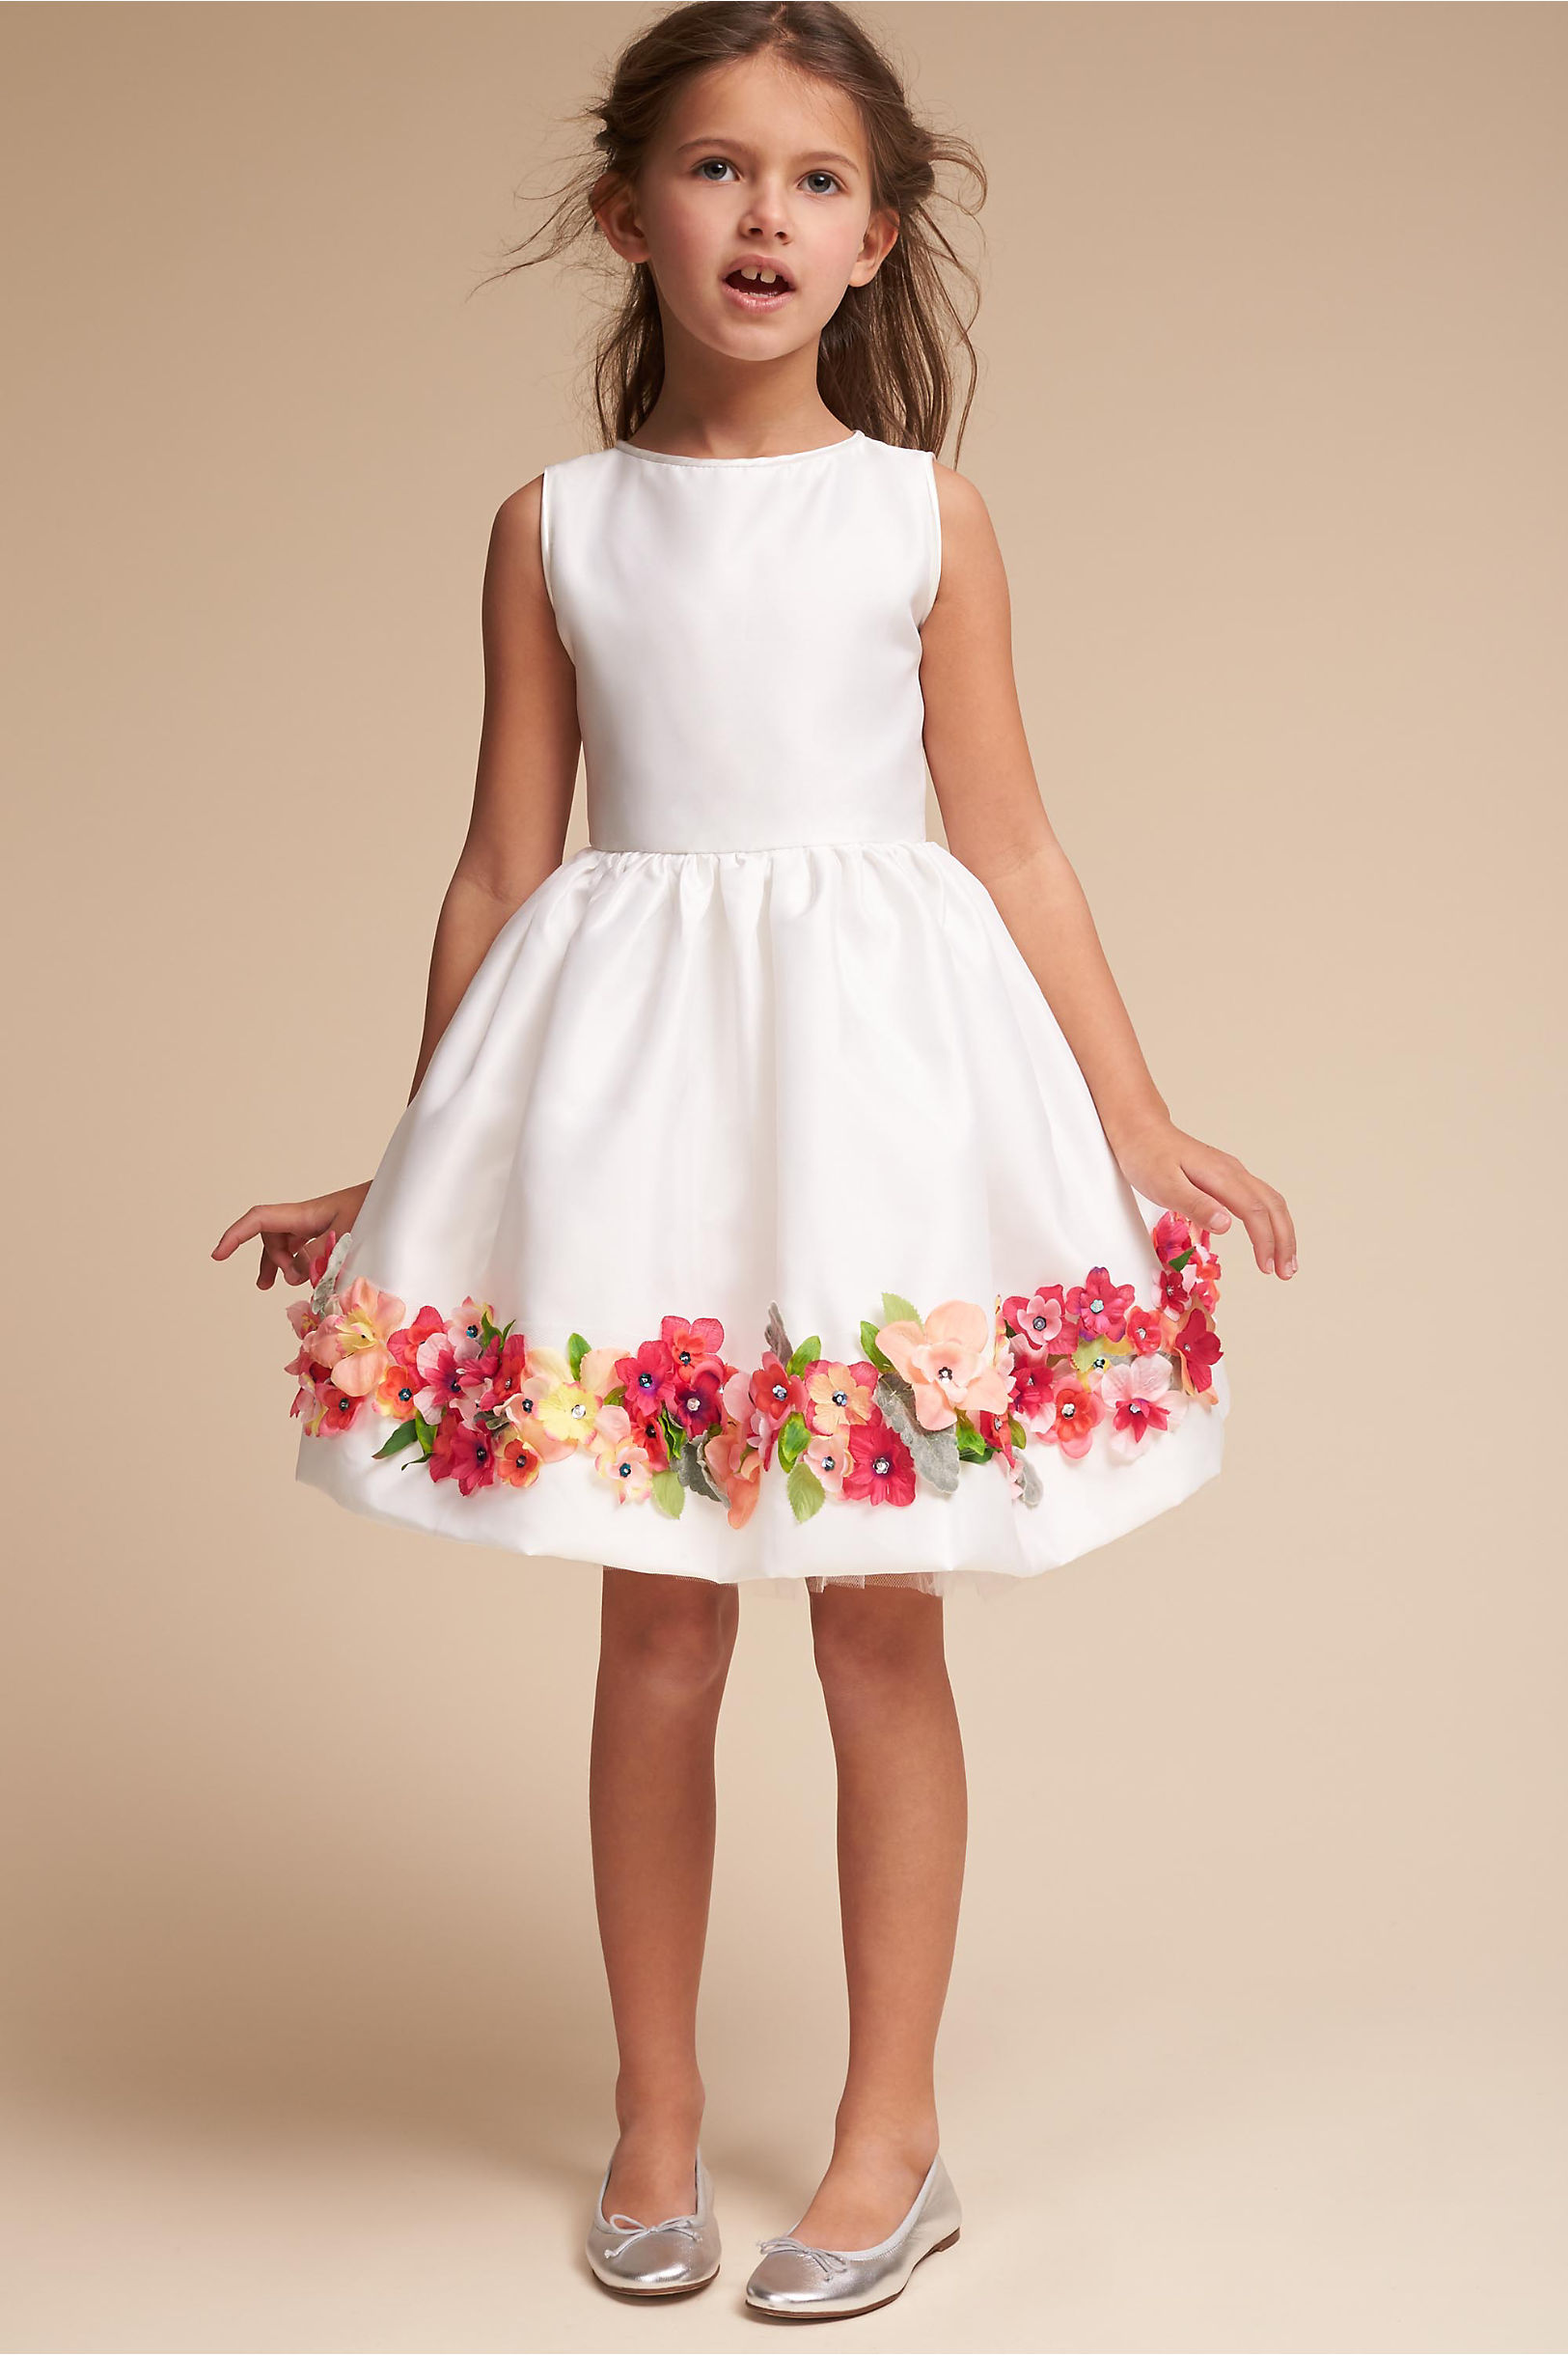 Wedding Ideas: Shop These Cute Flower Girl Dresses